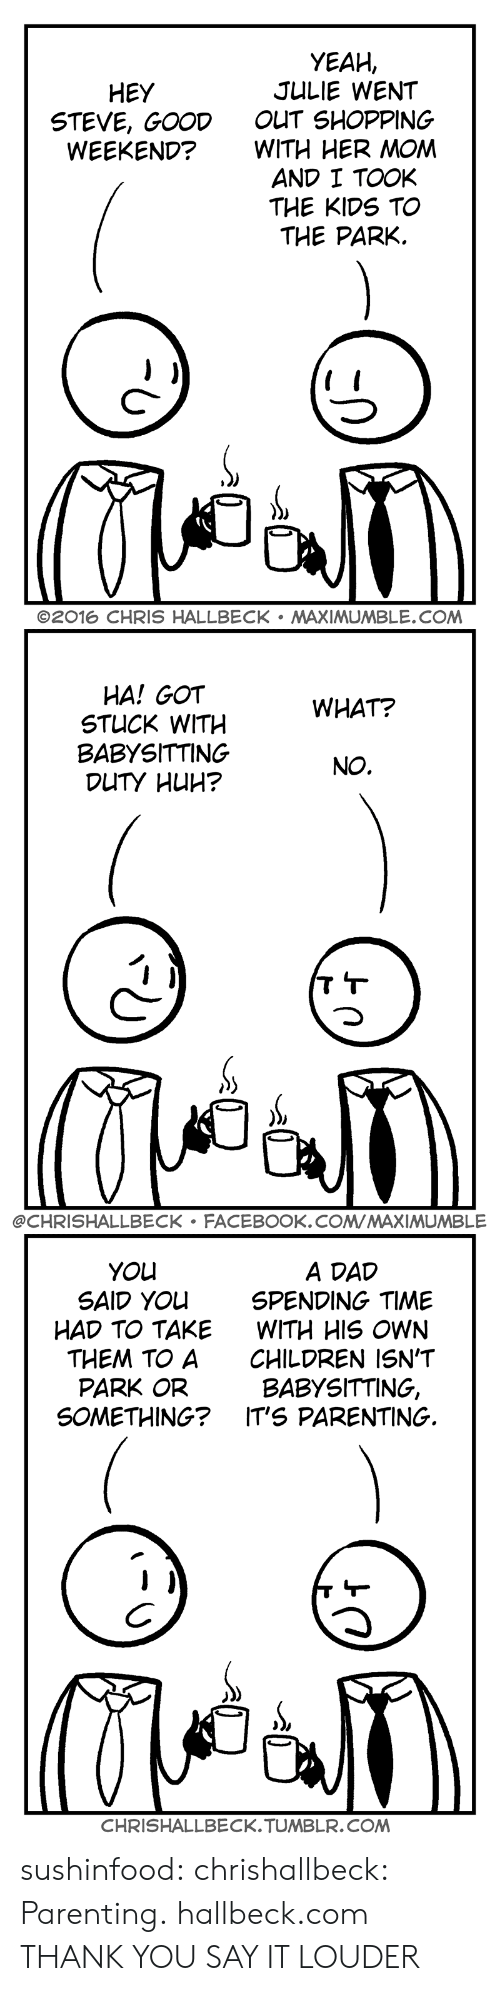 babysitting: YEAH,  JULIE WENT  OUT SHOPPING  WITH HER MOM  AND I TOOK  THE KIDS TO  THE PARK.  HEY  STEVE, GOOD  WEEKEND?  C-  ©2016 CHRIS HALLBECK . MAXIMUMBLE.COM   HA! GOT  STUCK WITH  BABYSITTING  WHAT?  NO.  @CHRISHALLBECK FACEBOOK.COMMAXIMUMBLE   A DAD  SPENDING TIME  WITH HIS OWN  CHILDREN ISN'T  BABYSITTING,  YOu  SAID YOu  HAD TO TAKE  THEM TO A  PARK OR  SOMETHING? IT'S PARENTING.  CHRISHALLBECK.TUMBLR.COM sushinfood: chrishallbeck:  Parenting. hallbeck.com  THANK YOU   SAY IT LOUDER